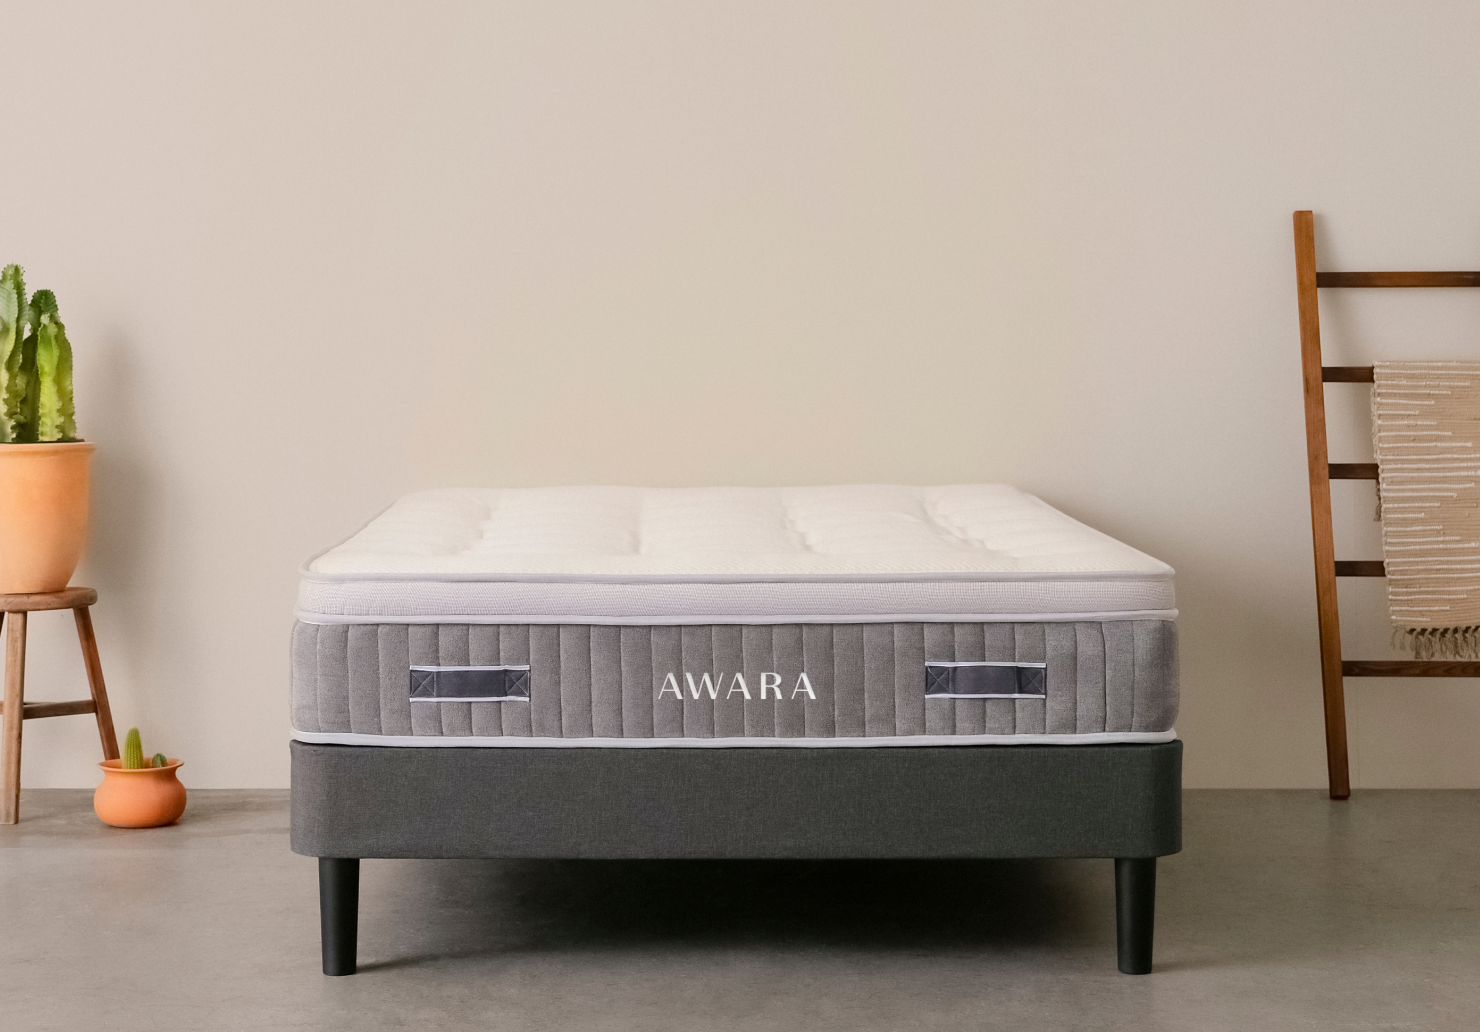 Awara Queen Latex Hybrid Mattress